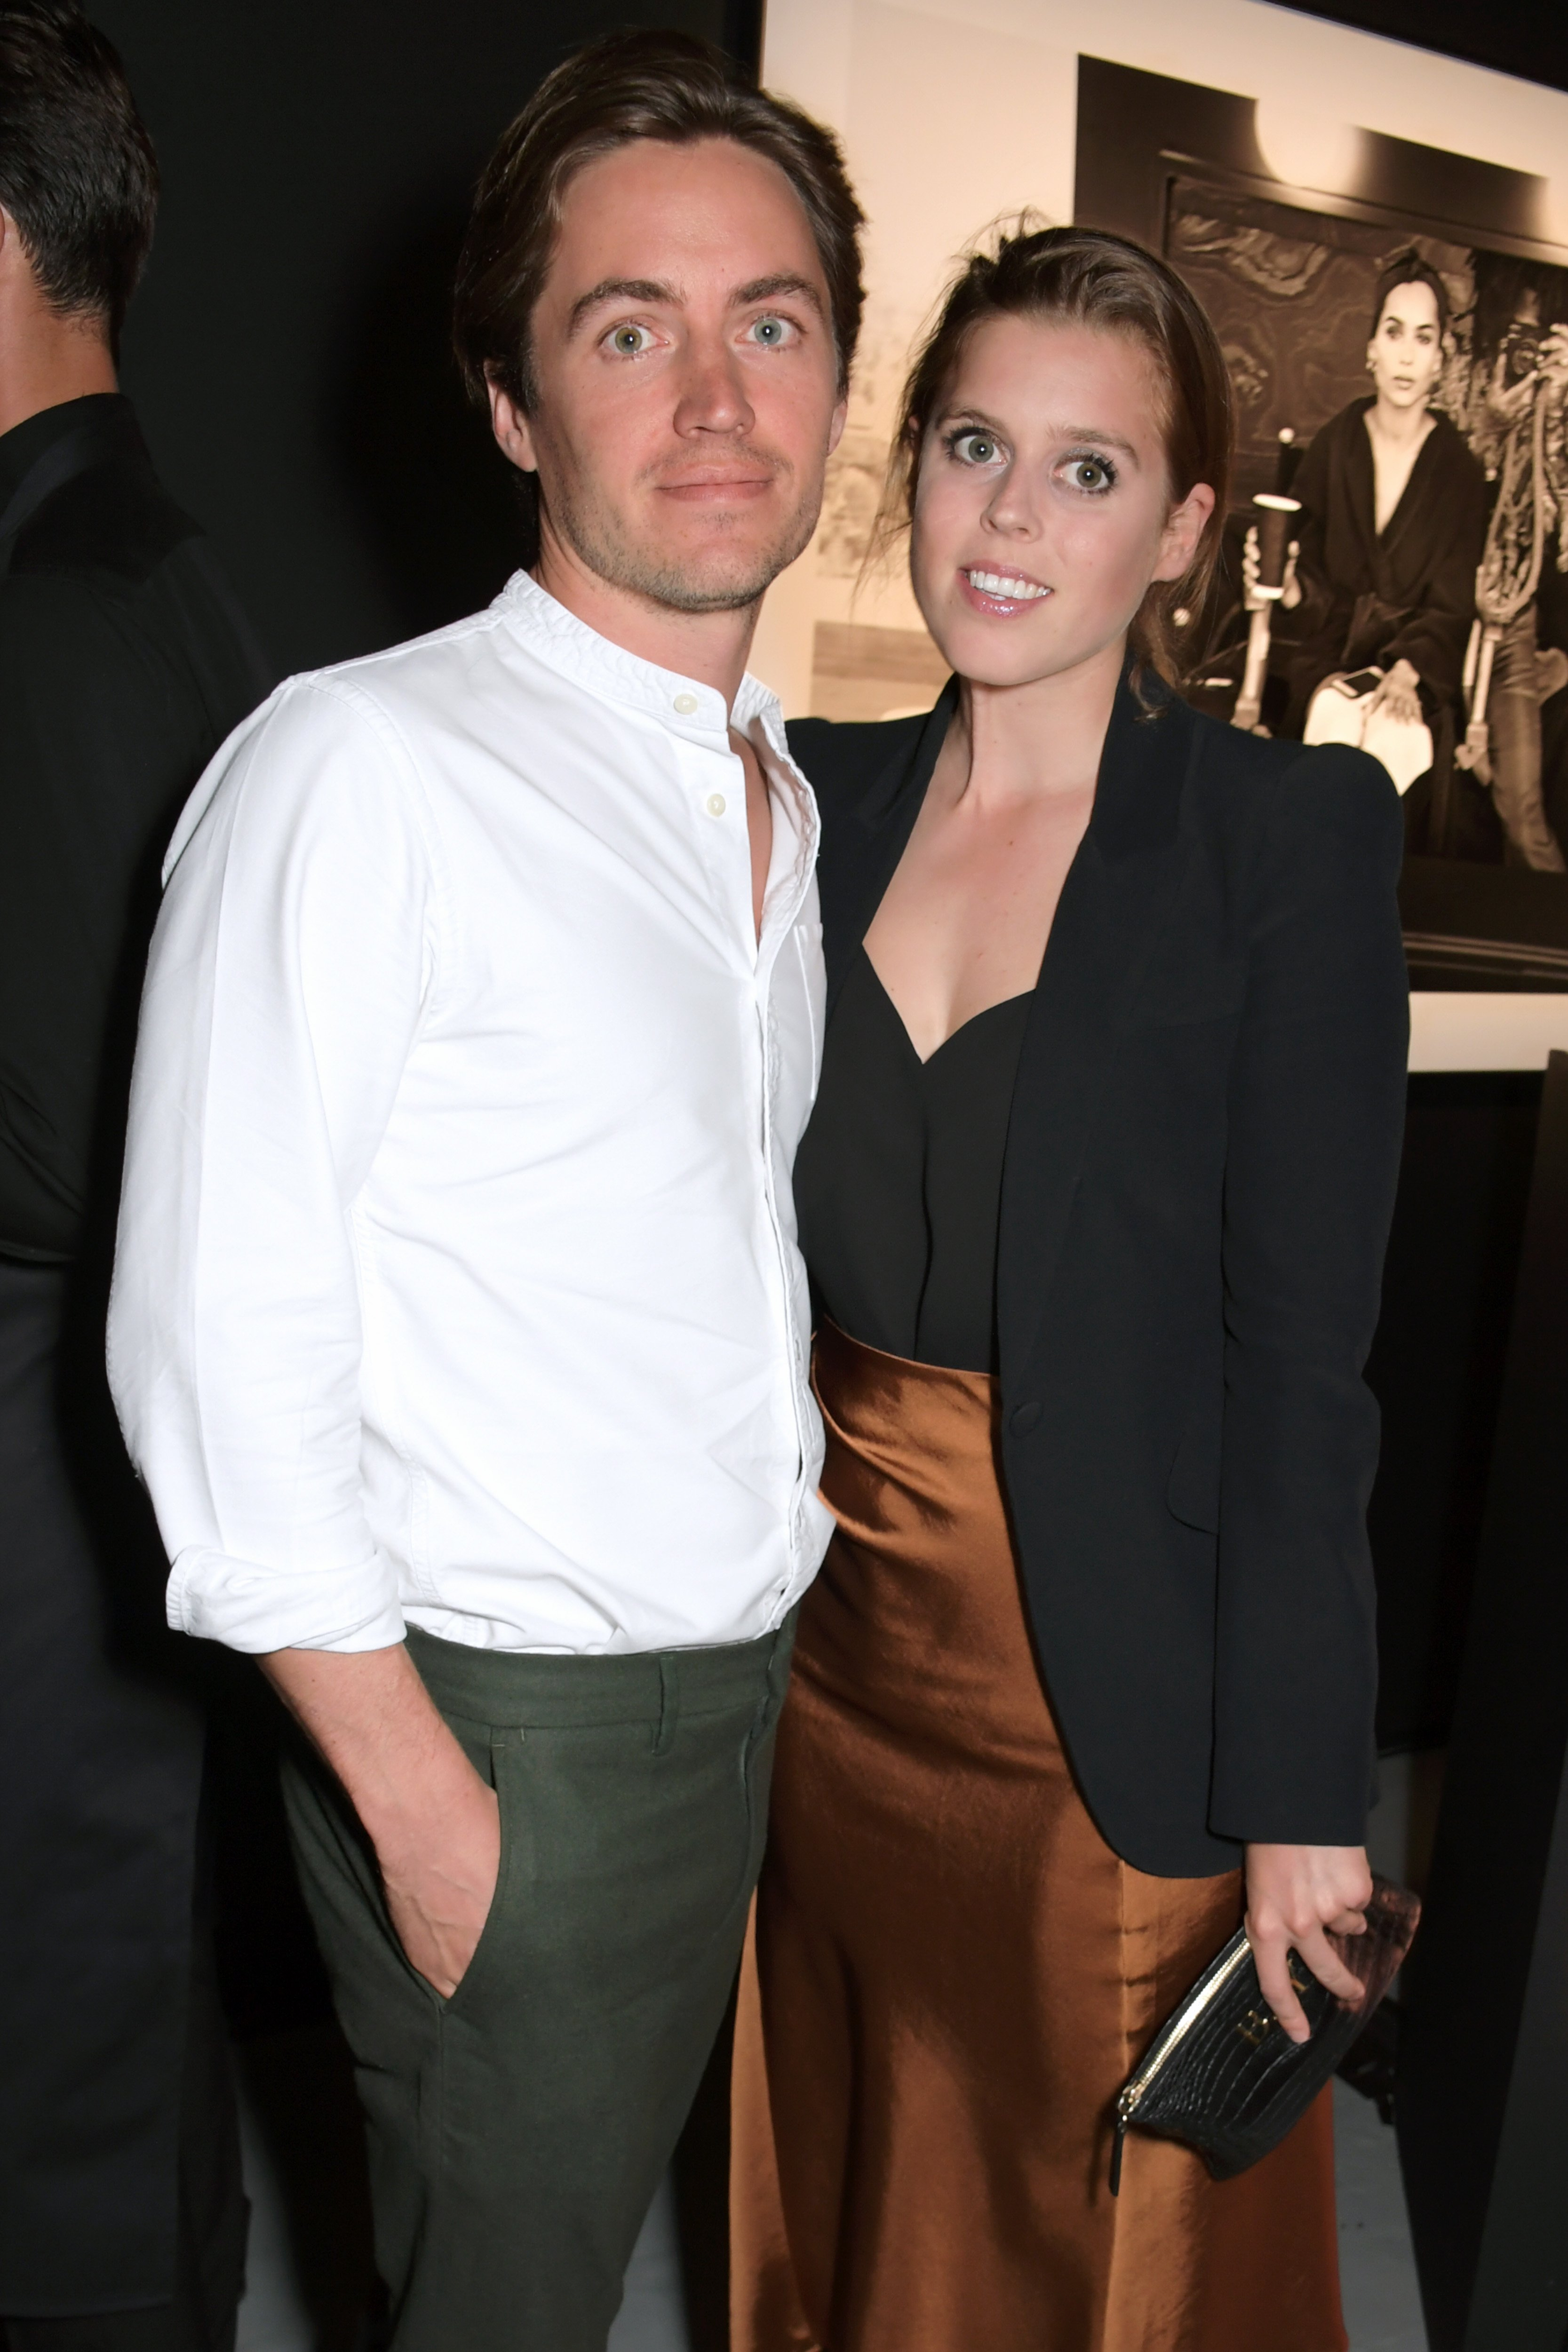 Edoardo Mapelli Mozzi and Princess Beatrice attend an exhibition, on July 10, 2019 in London, England   Photo: Getty Images